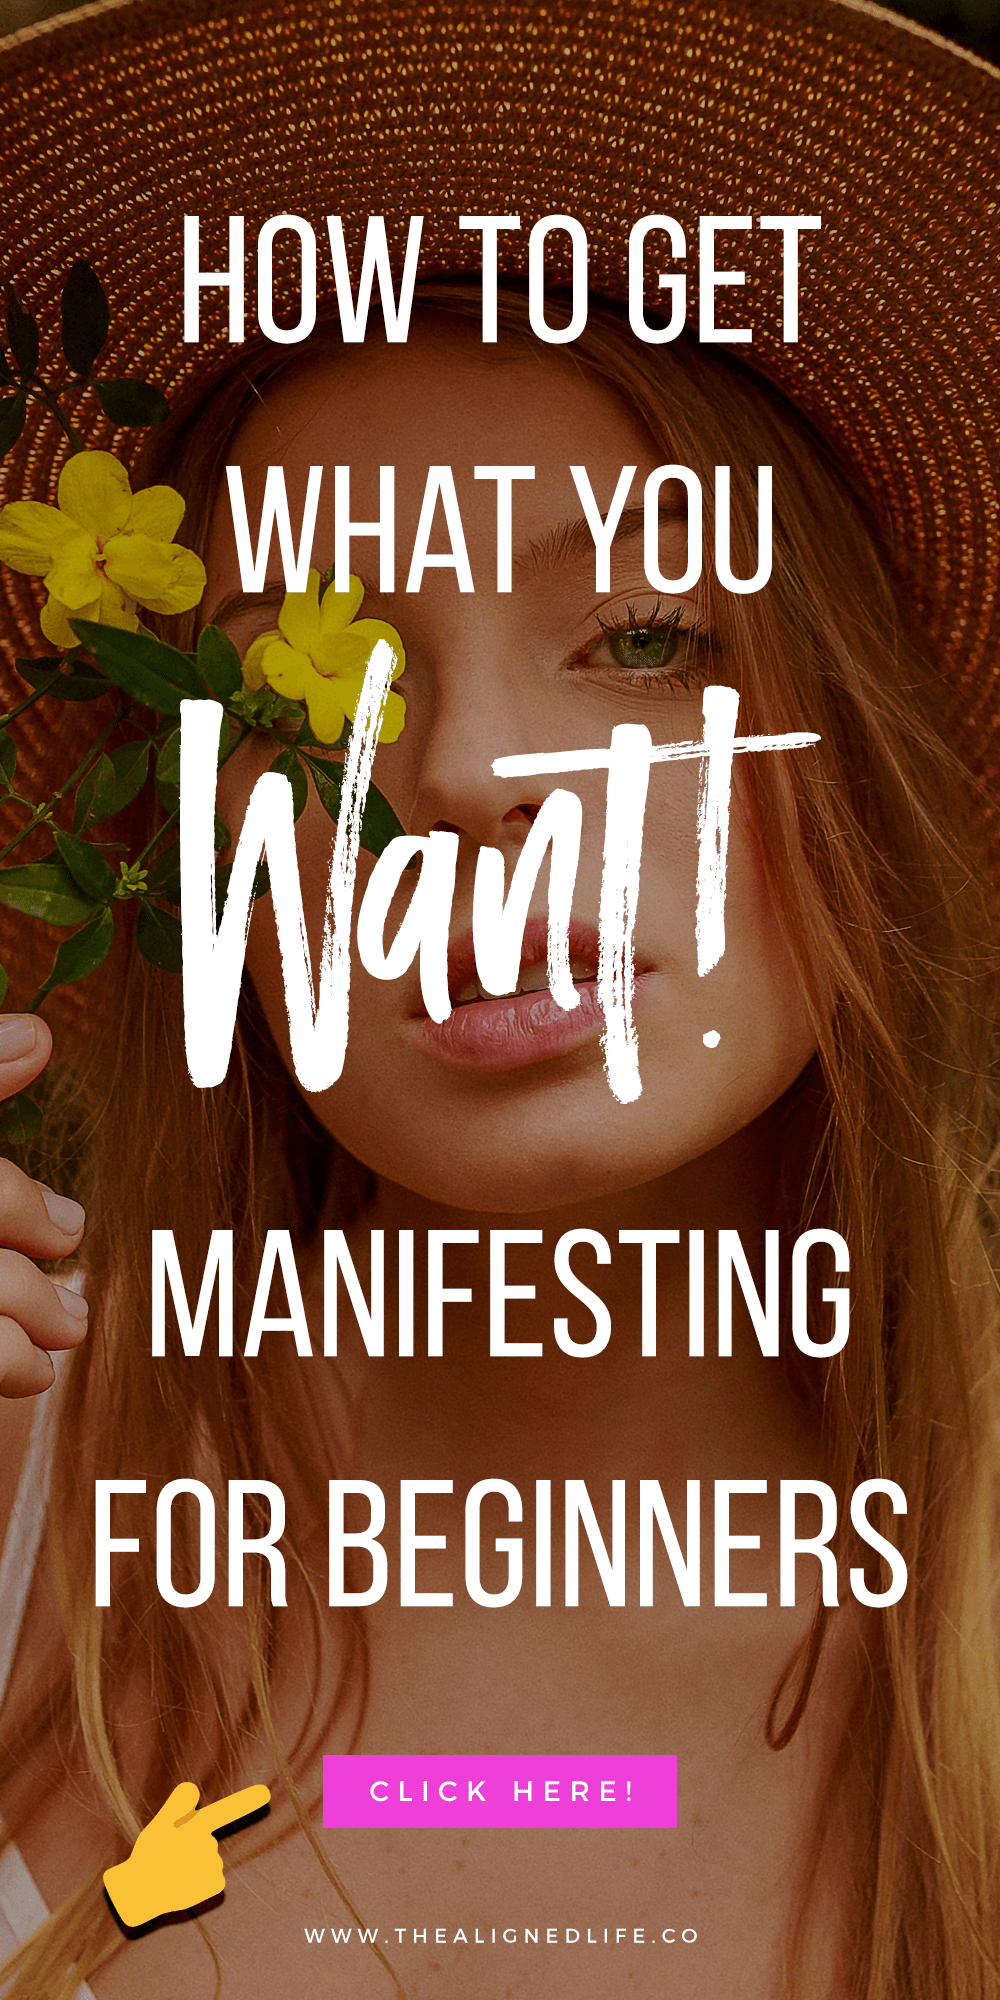 Manifesting For Beginners: How To Get What You Really Want